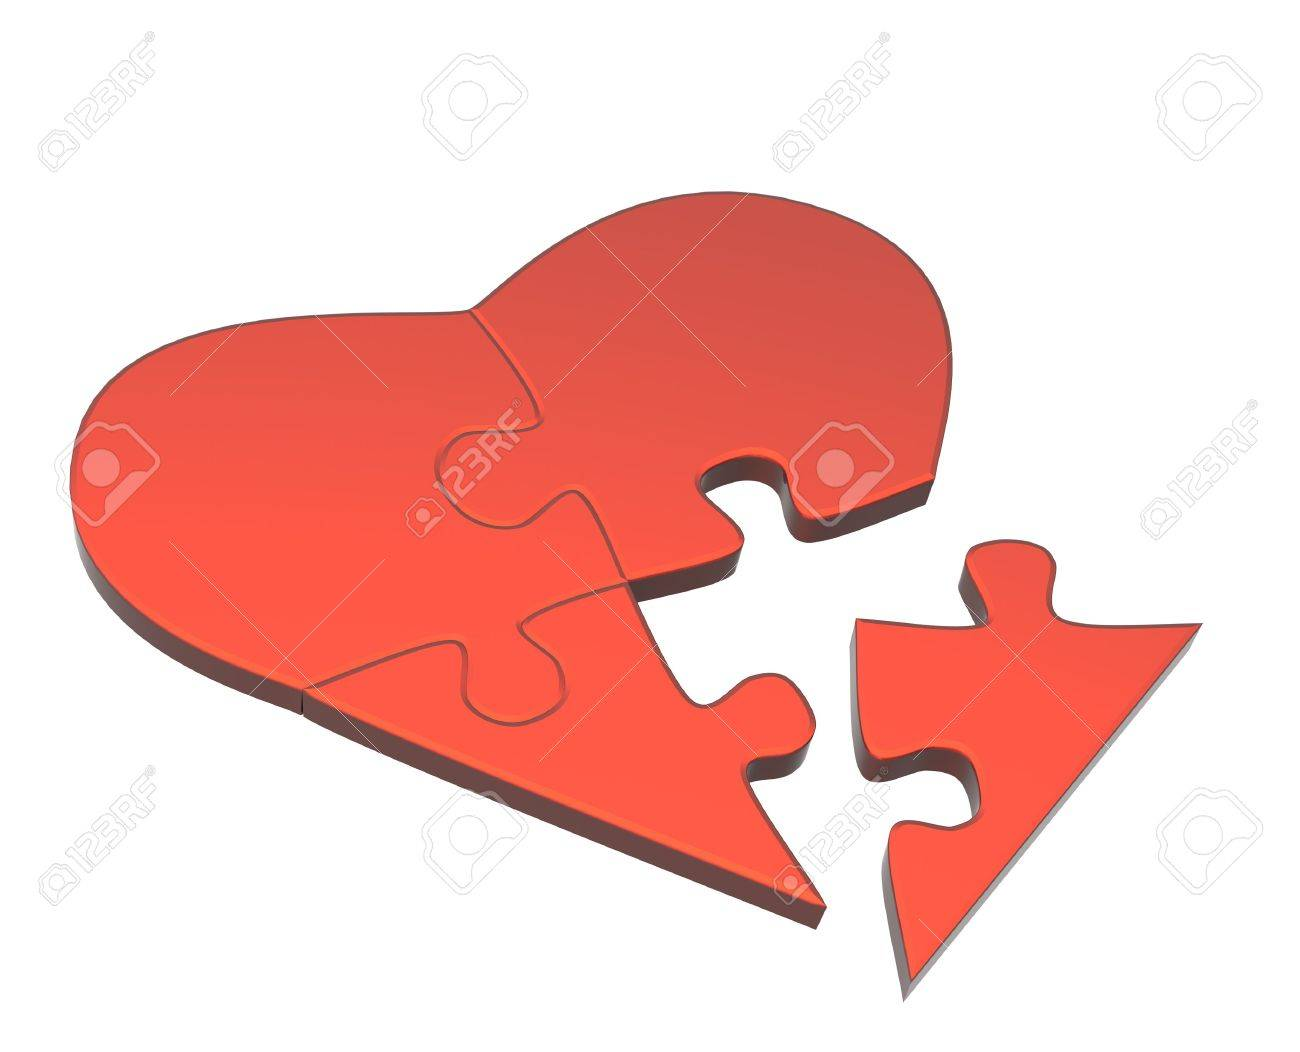 Symbol of love - heart from parts of a puzzle Stock Photo - 5773971